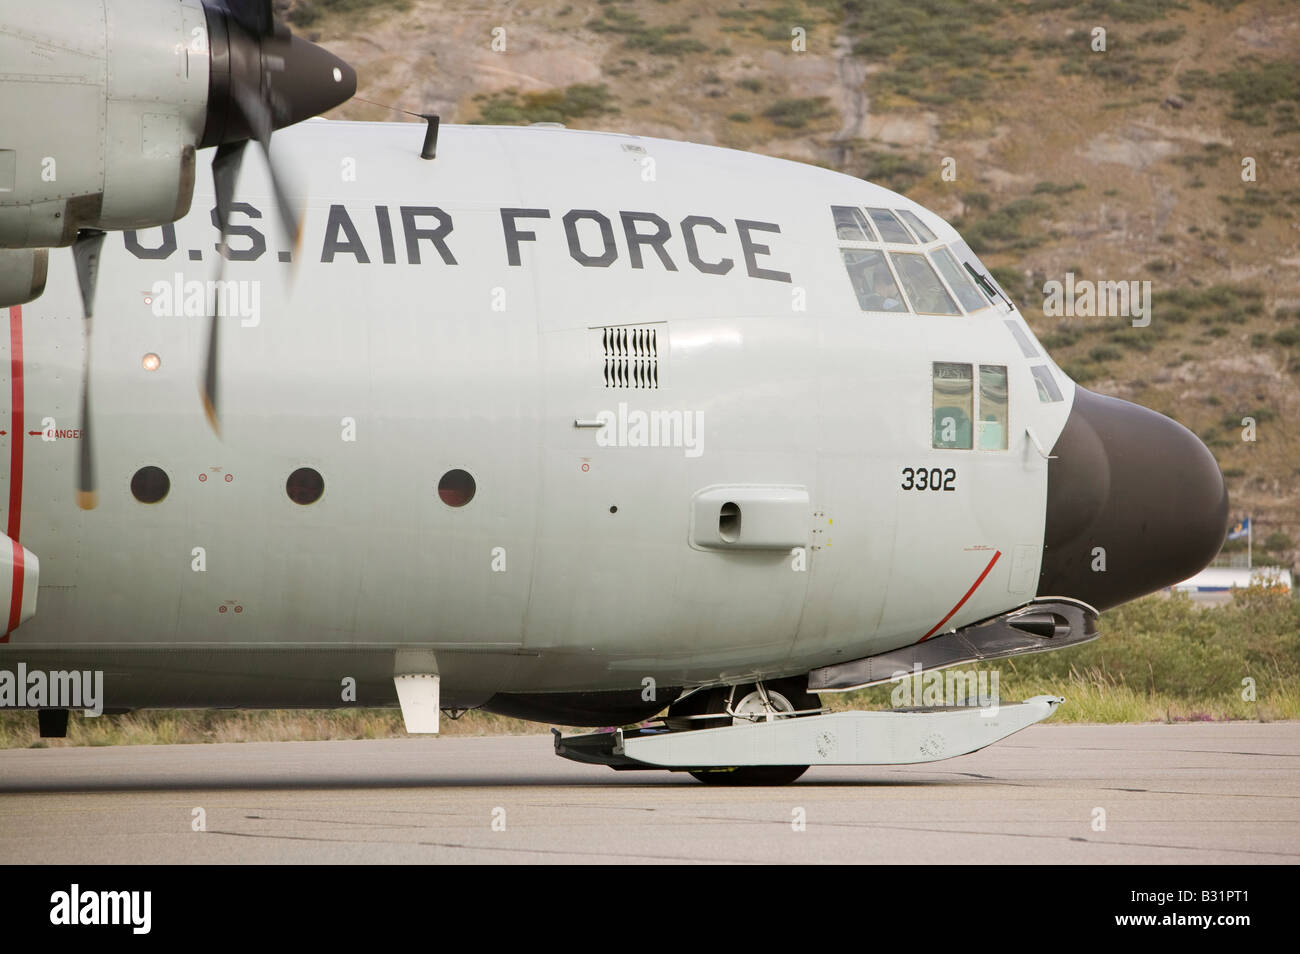 An American Air Force flight at Kangerlussuaq on Greenland after a resupply flight to the science base on the summit - Stock Image